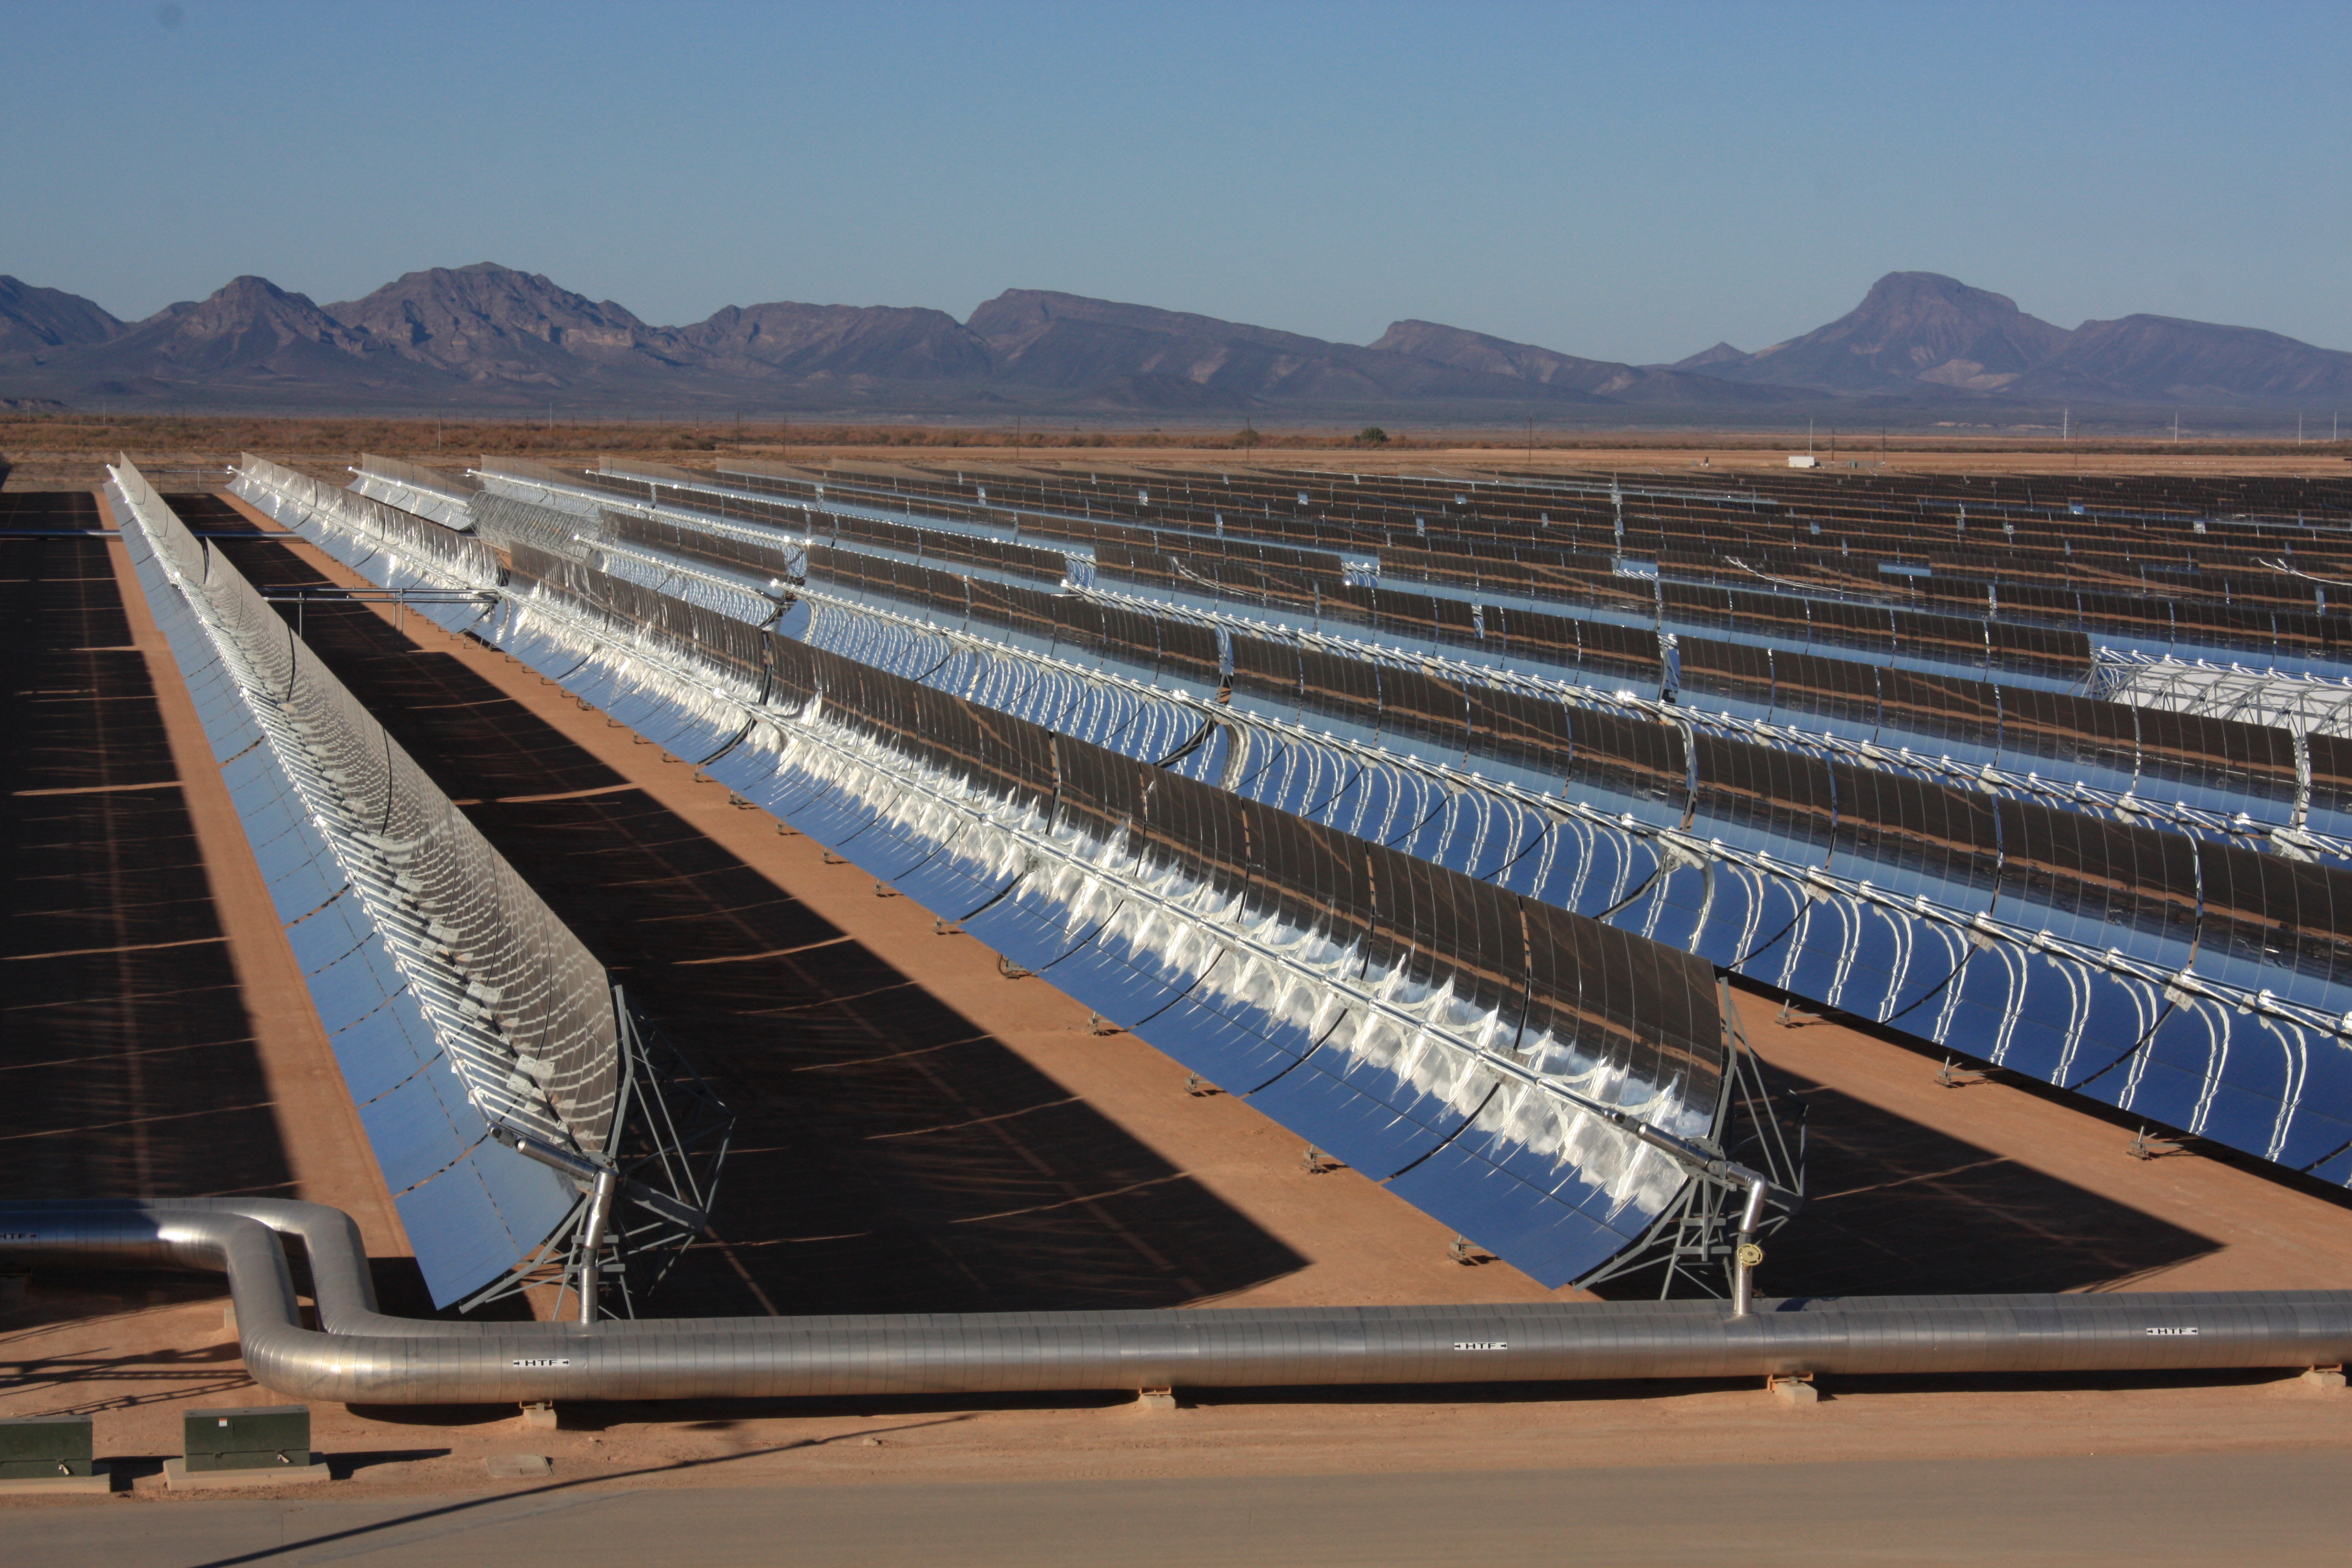 The Solana Generating Station is a solar power plant near